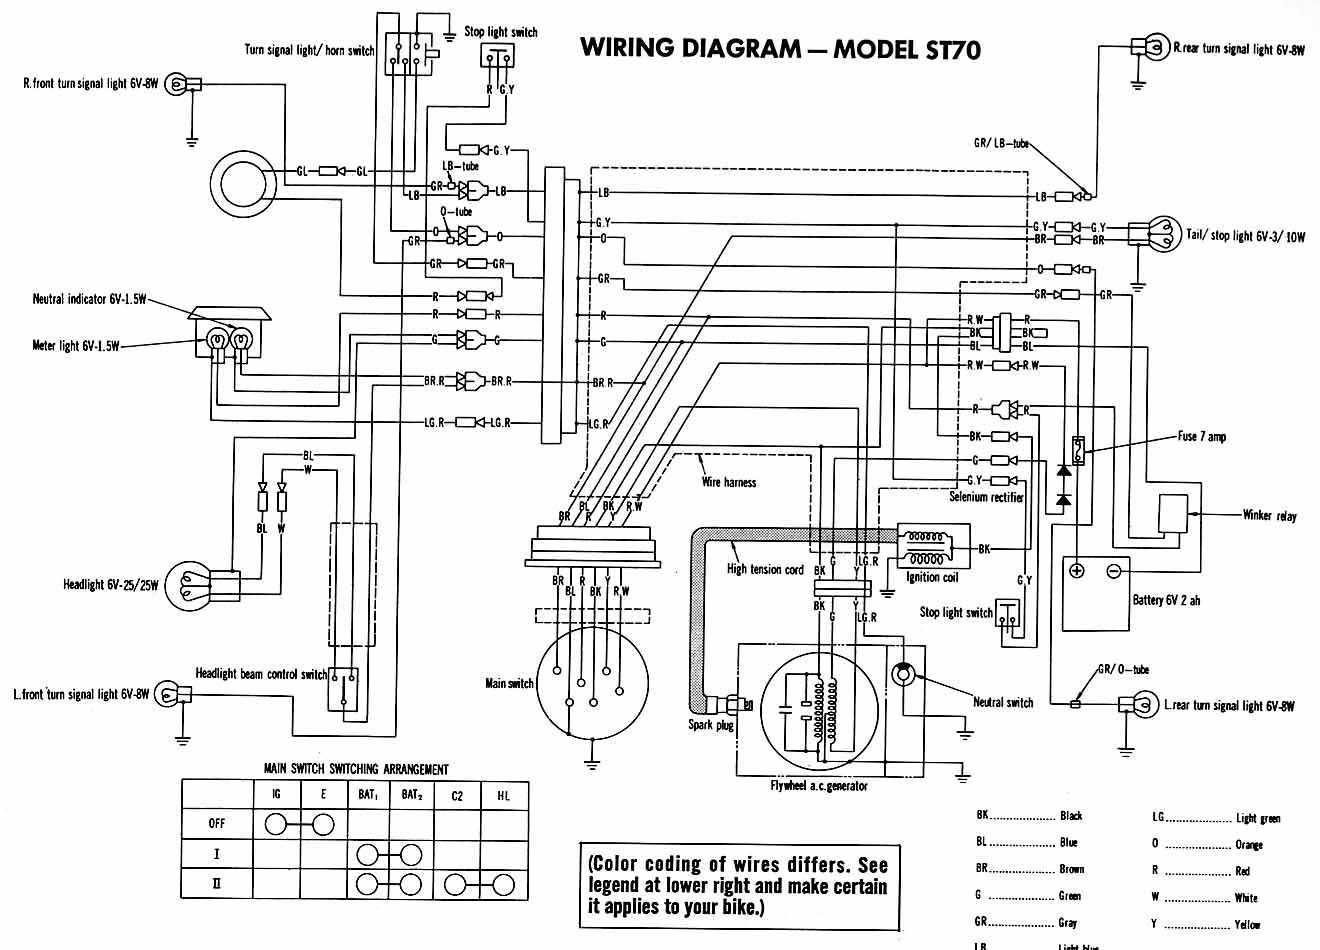 wiring diagram for motorcycle honda st70 motorcycle wiring diagram | all about wiring ... ignition switch wiring diagram for motorcycle